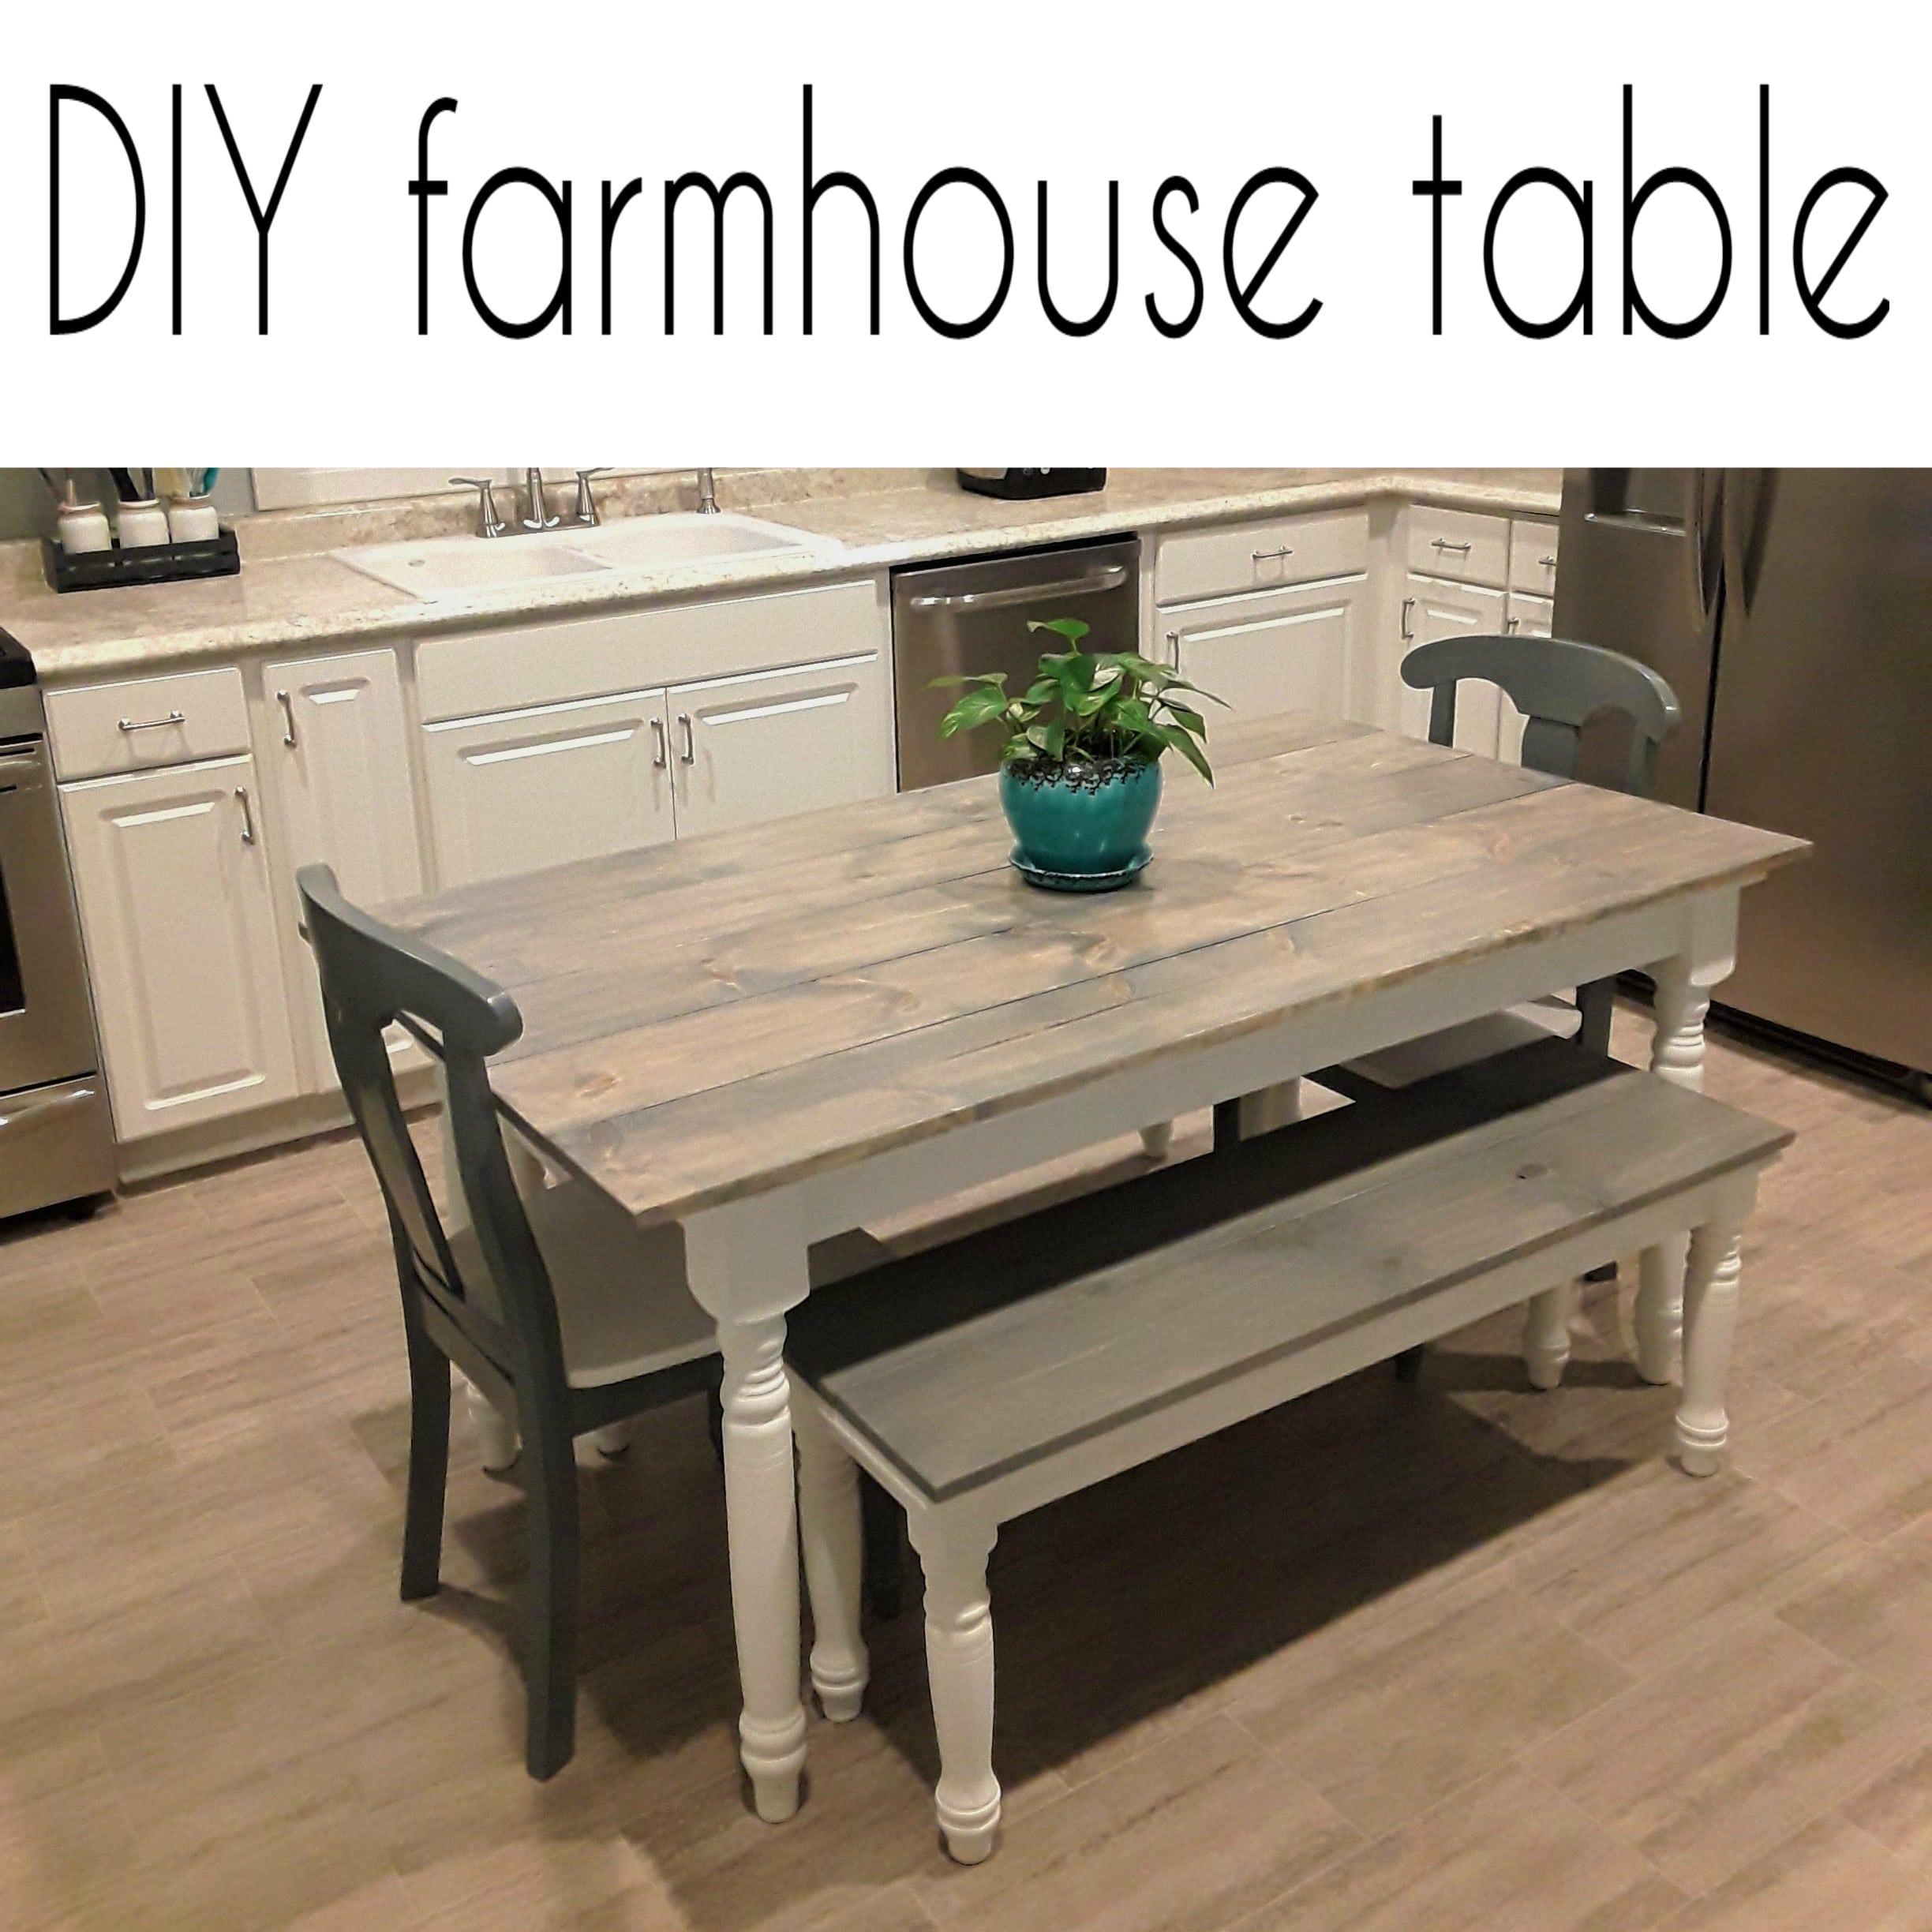 Farmhouse Kitchen Table Remodel Crazy Diy Mom